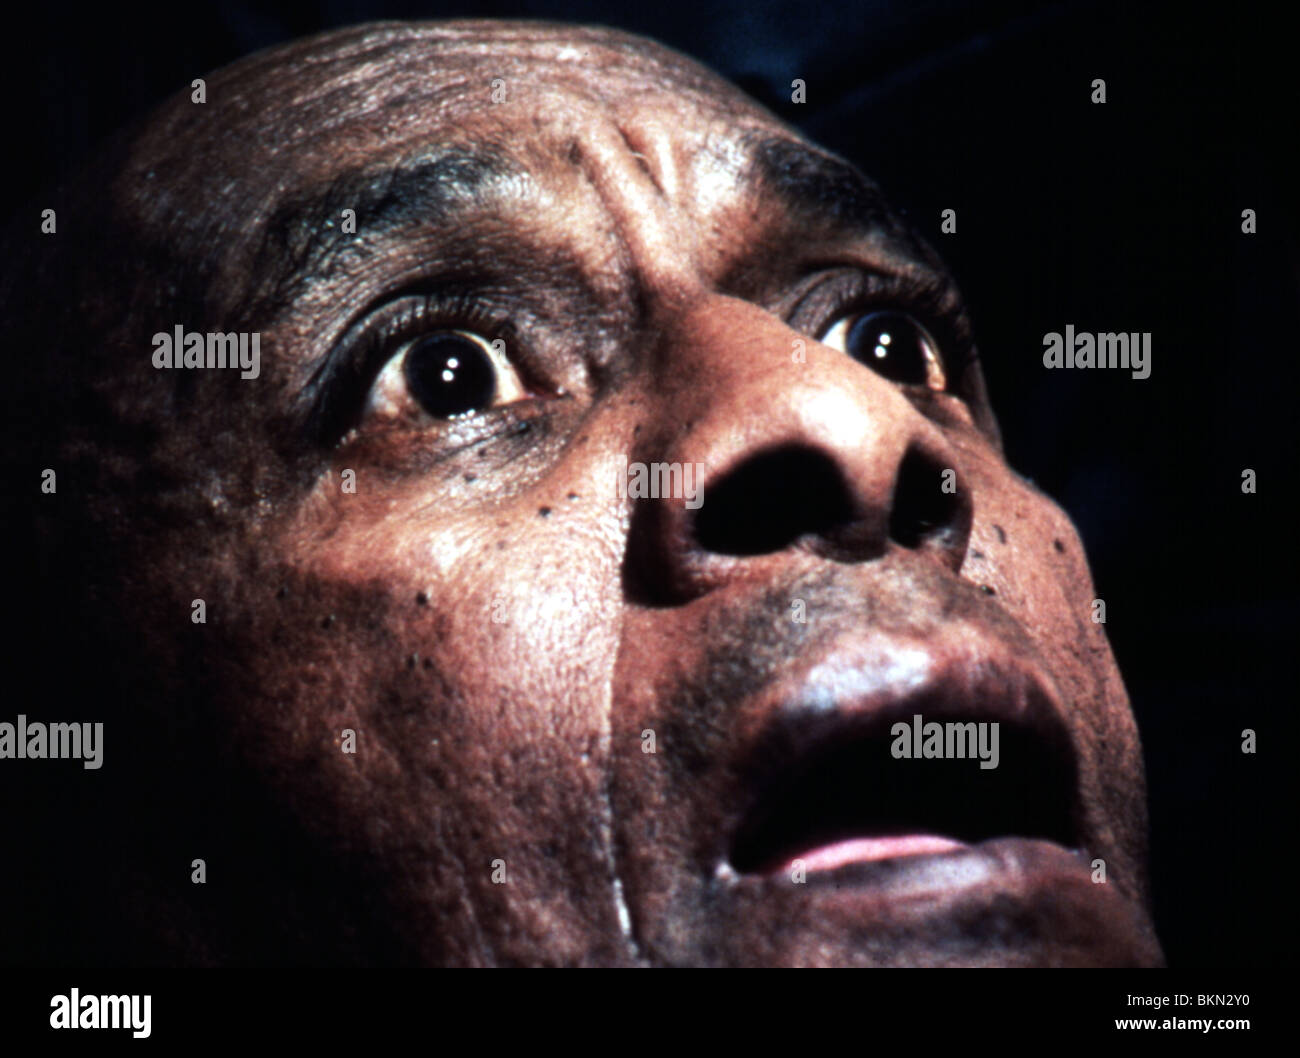 THE SHINING (1980) SCATMAN CROTHERS SHI 014 - Stock Image